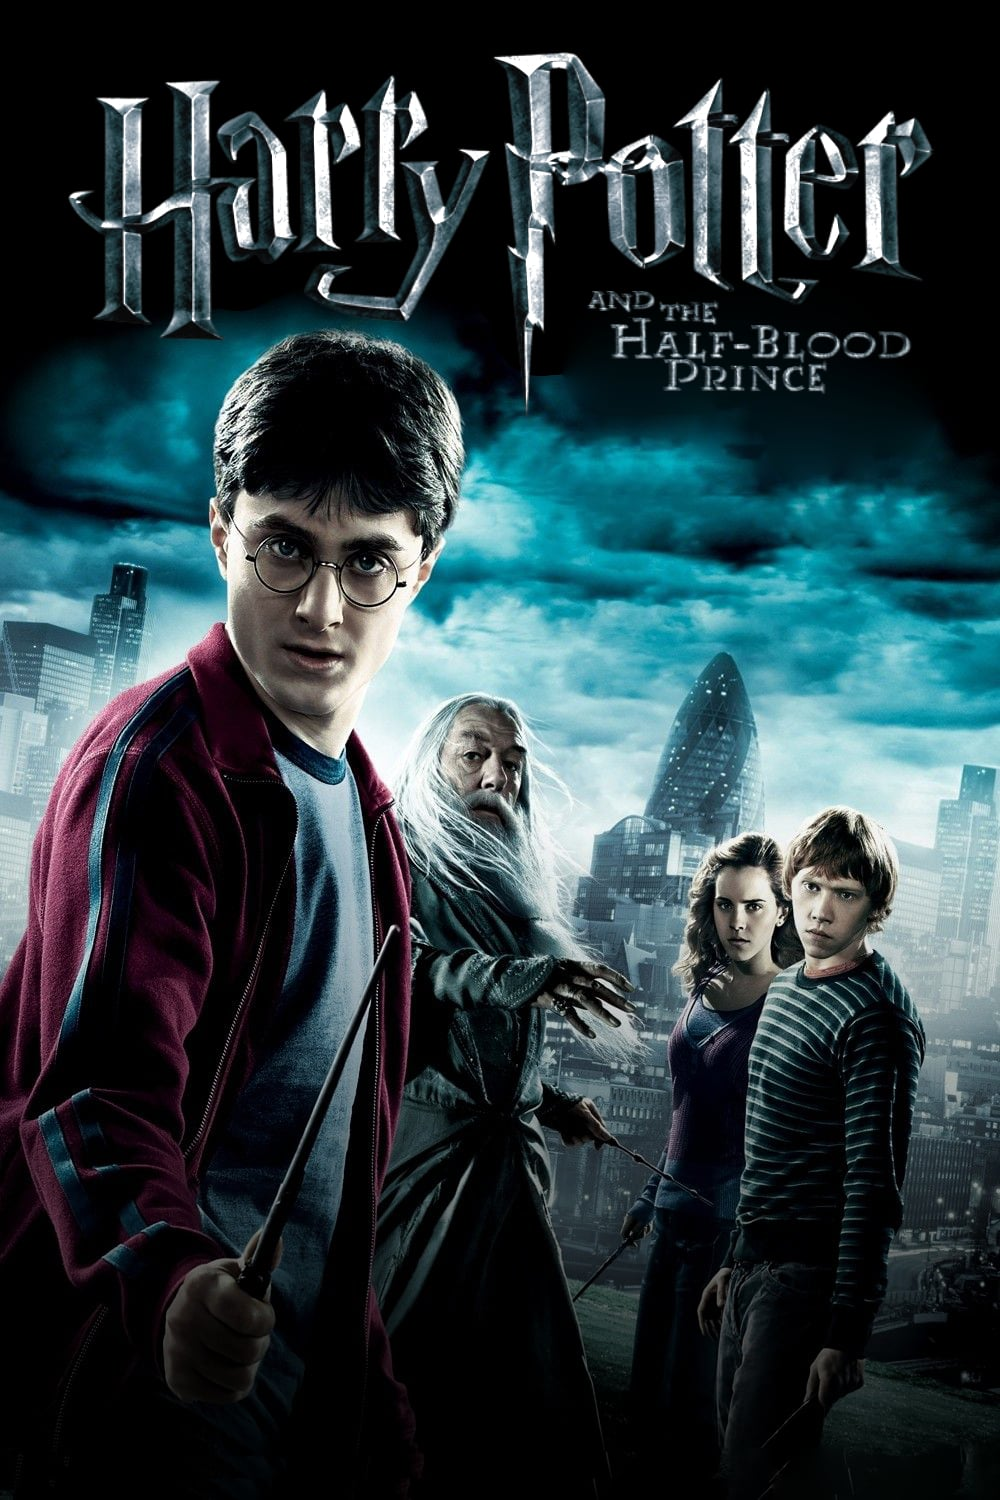 Harry Potter 6 En Streaming : harry, potter, streaming, Harry, Potter, Half-Blood, Prince, Movie, Streaming, Online, Watch, Amazon,, Google, Play,, Hungama,, ITunes